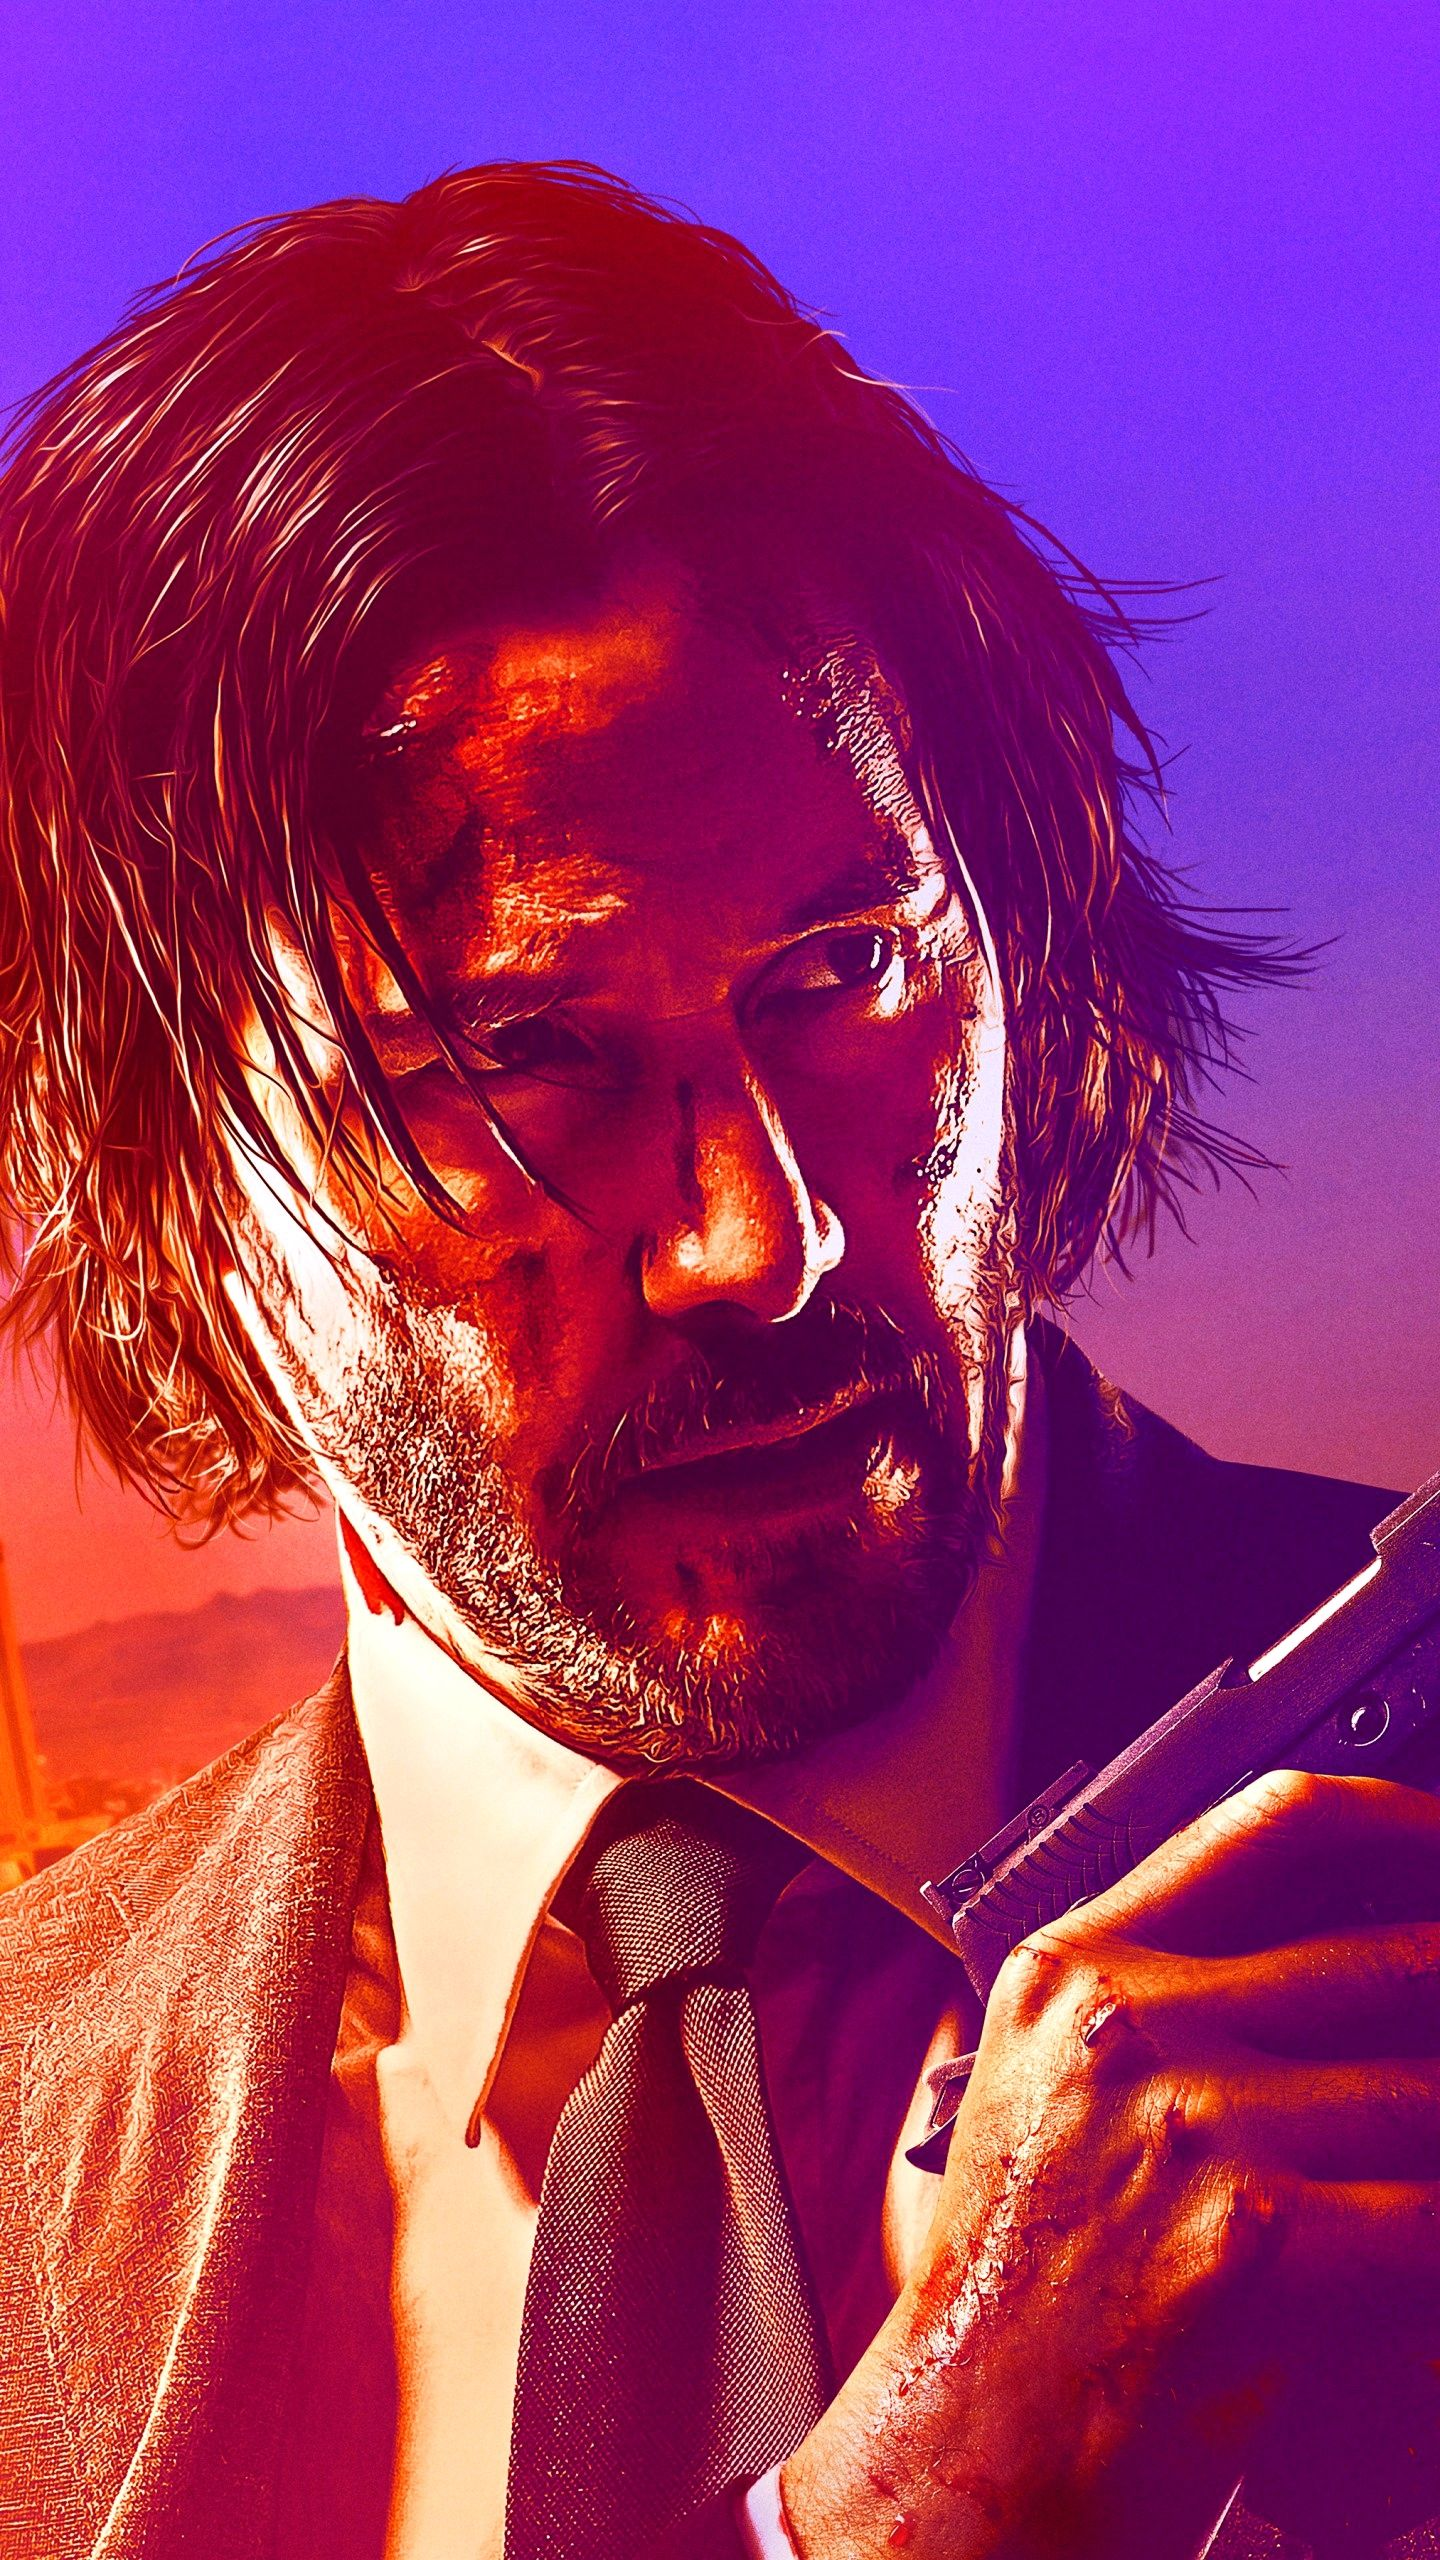 John Wick Wallpaper 4k Mobile Ideas In 2020 John Wick Hd Keanu Reeves John Wick John Wick Movie